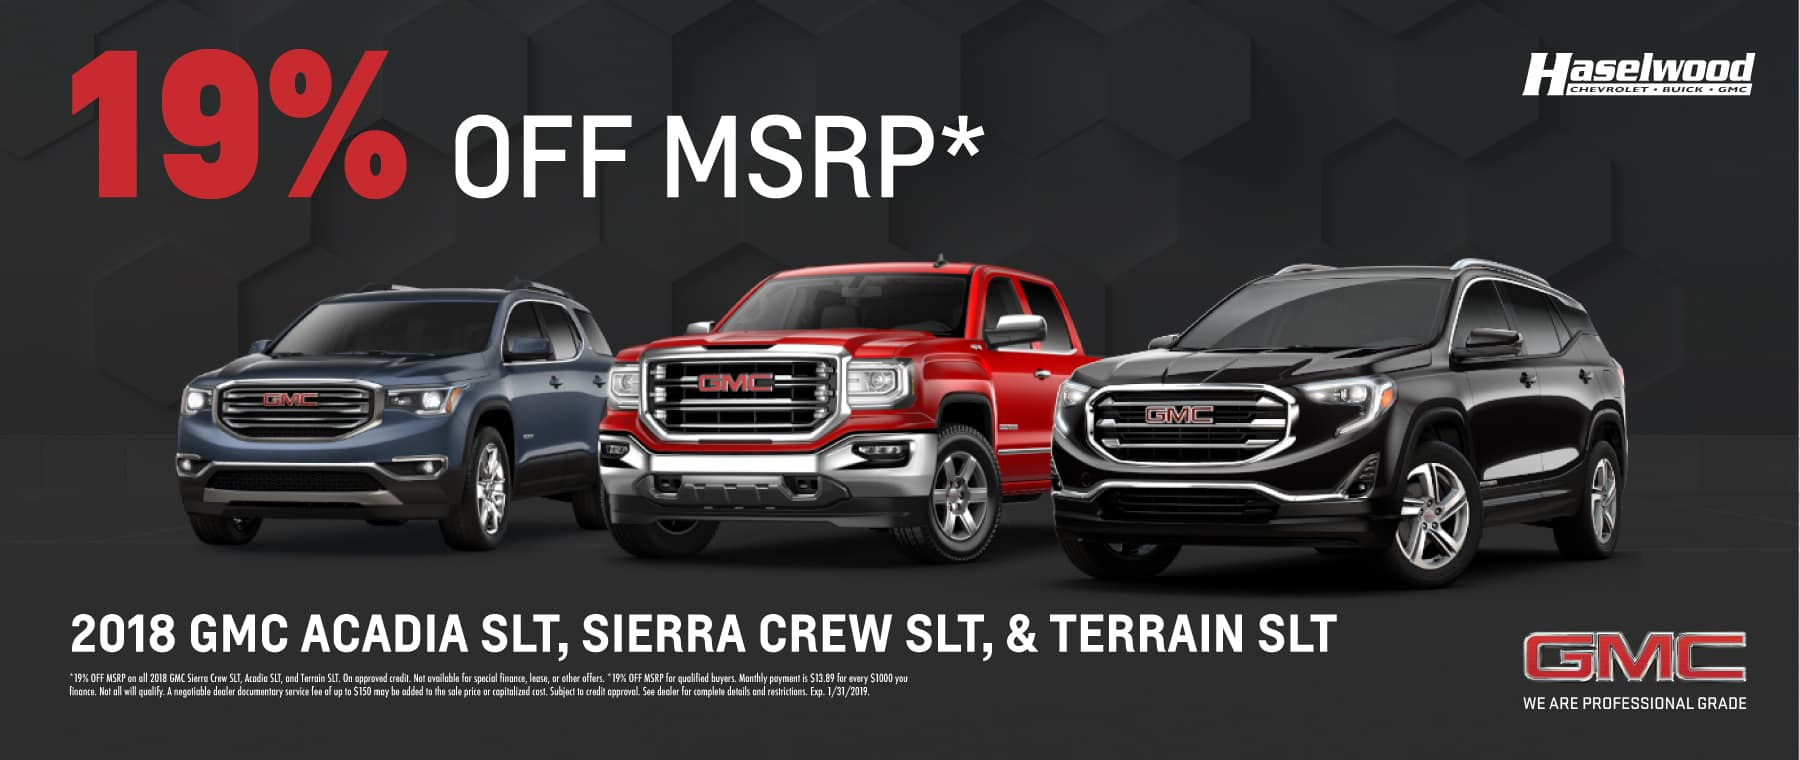 2018 GMC Sierra Crew SLT, Acadia SLT, and Terrain SLT (Featured Vehicle) 19% OFF MSRP*   *19% OFF MSRP on all 2018 GMC Sierra Crew SLT, Acadia SLT, and Terrain SLT. On approved credit. Not available for special finance, lease, or other offers. *19% OFF MSRP for qualified buyers. Monthly payment is $13.89 for every $1000 you finance. Not all will qualify. A negotiable dealer documentary service fee of up to $150 may be added to the sale price or capitalized cost. Subject to credit approval. See dealer for complete details and restrictions. Exp. 1/31/2019.